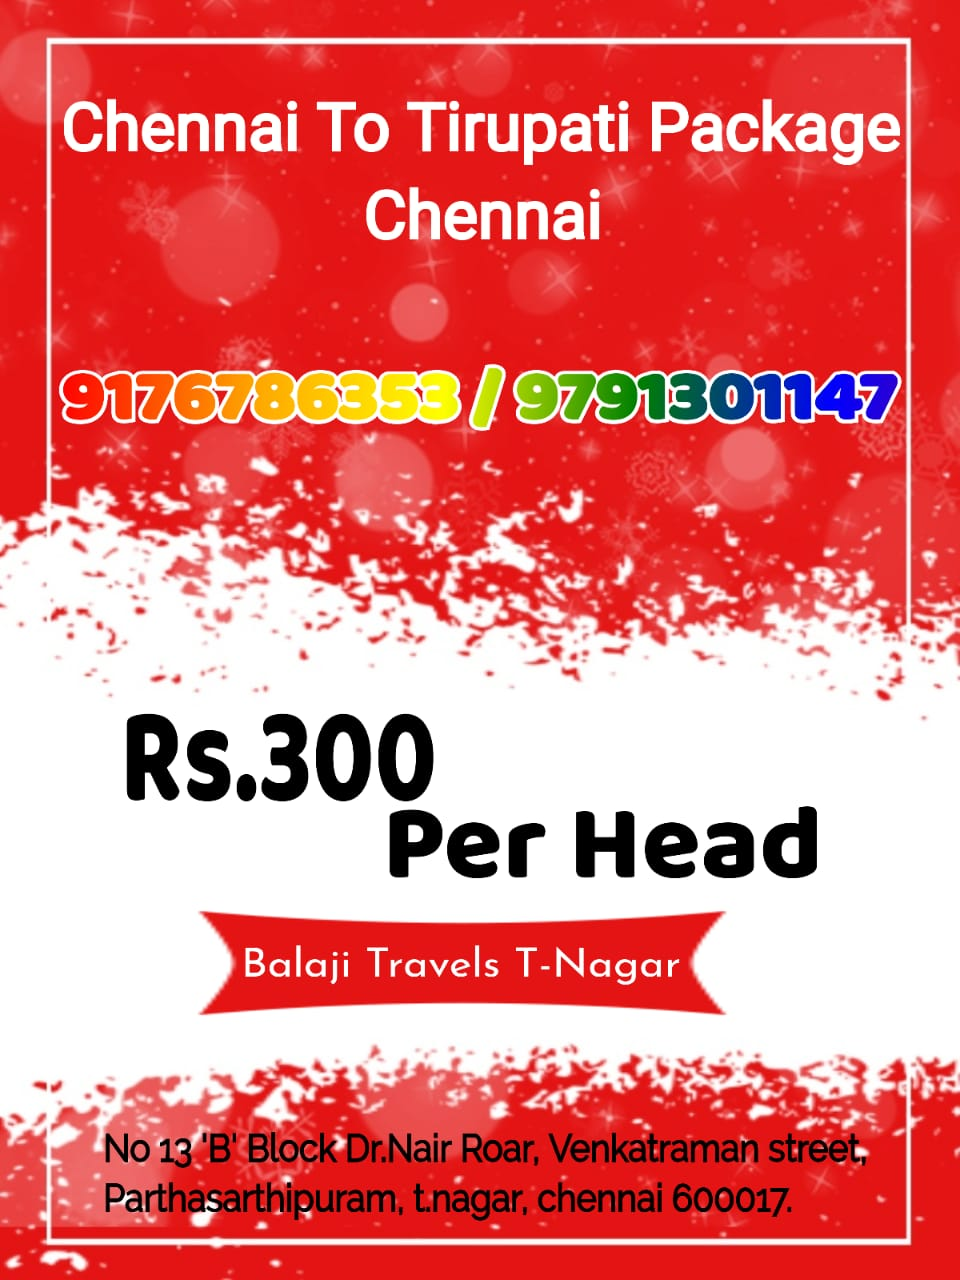 9176786353 / 9791301147 Chennai To Tirupati One Day Package